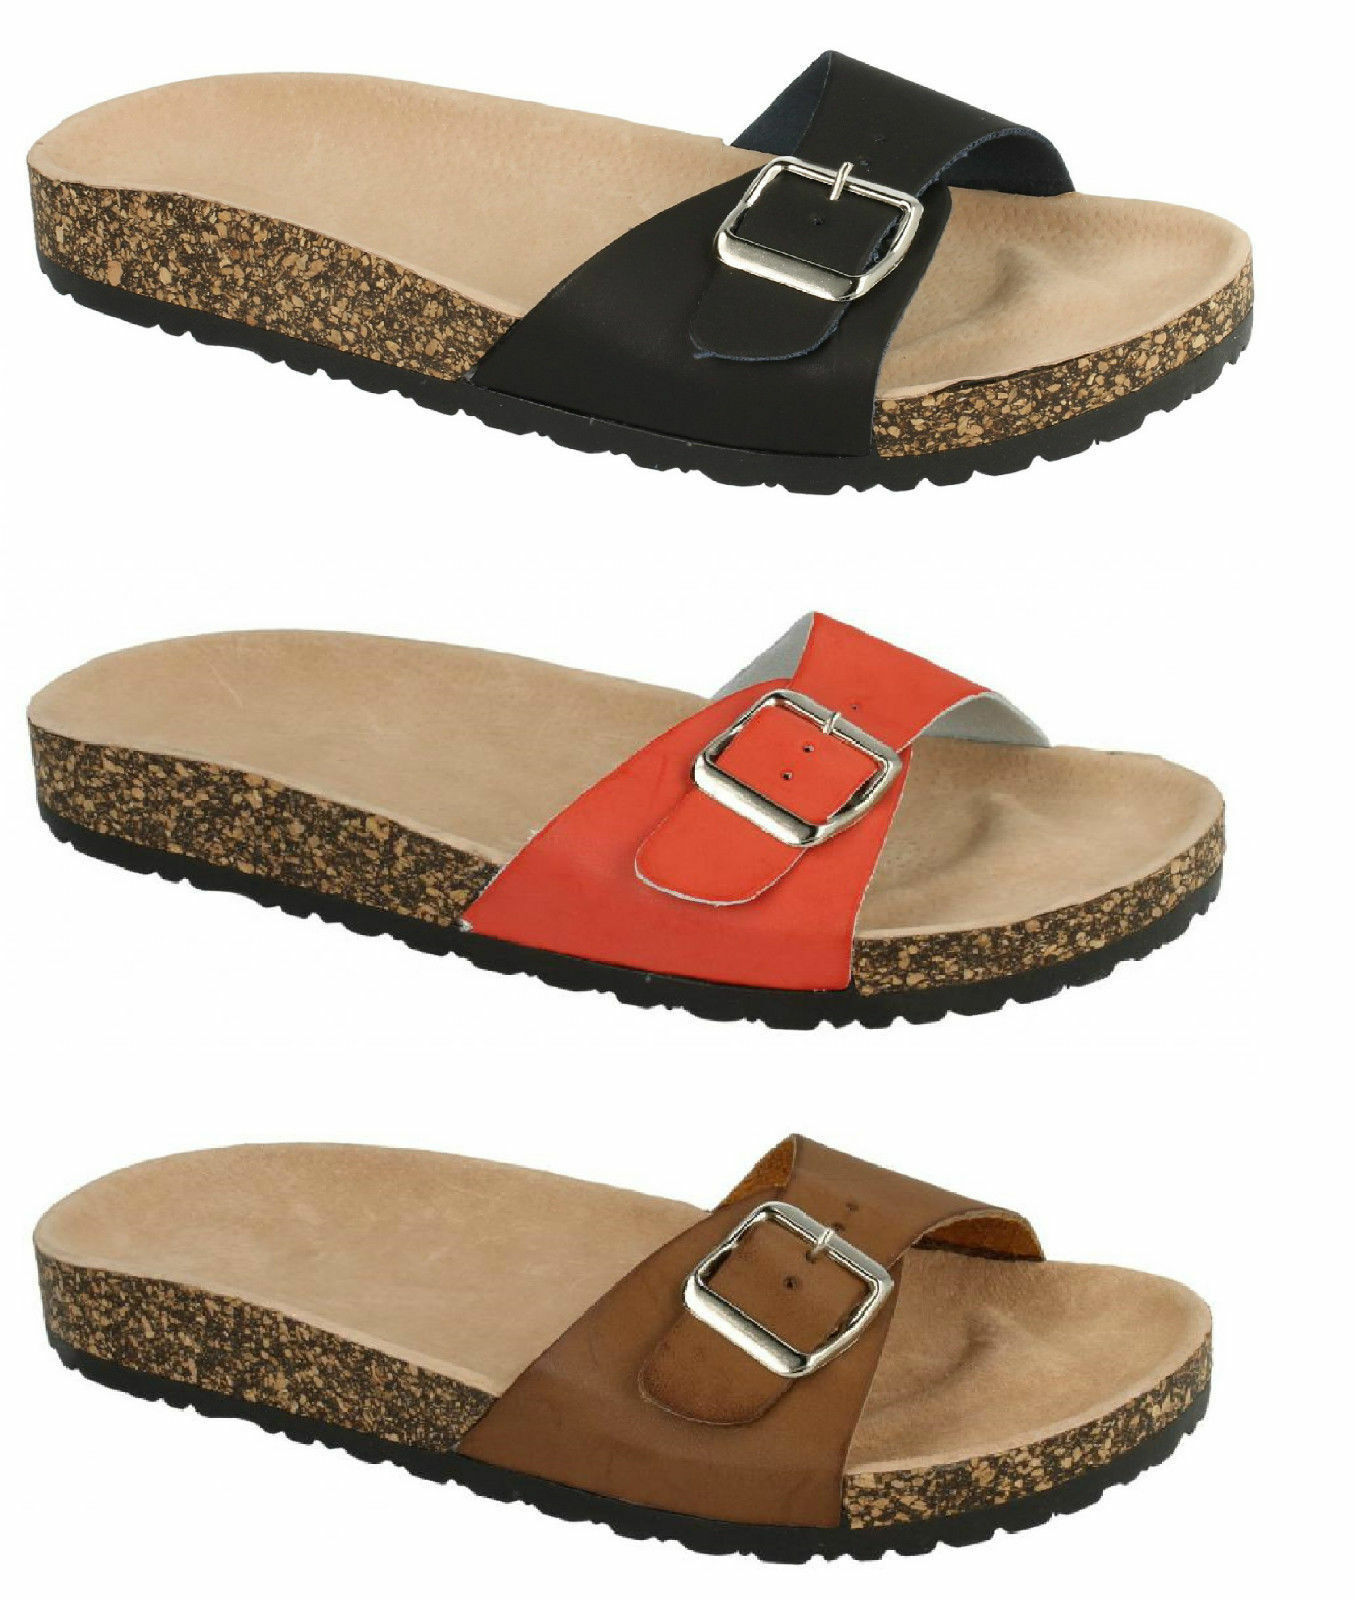 SALE F10293 - Ladies adjustable footbed slip mule buckle strap sandals slip footbed ons fbe971